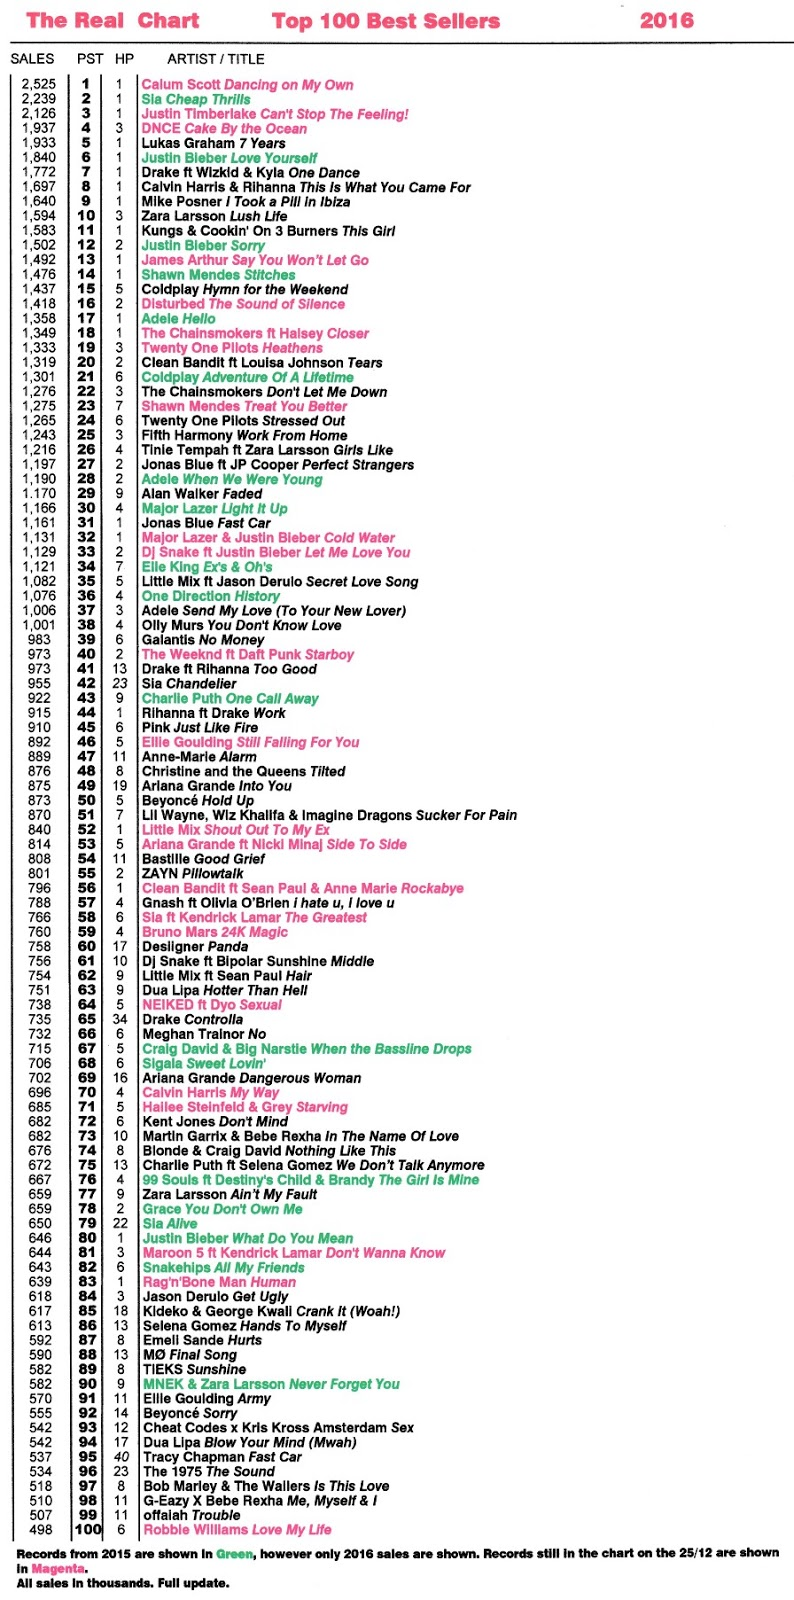 Real Life And Real Charts: Top 100 Best Selling Singles